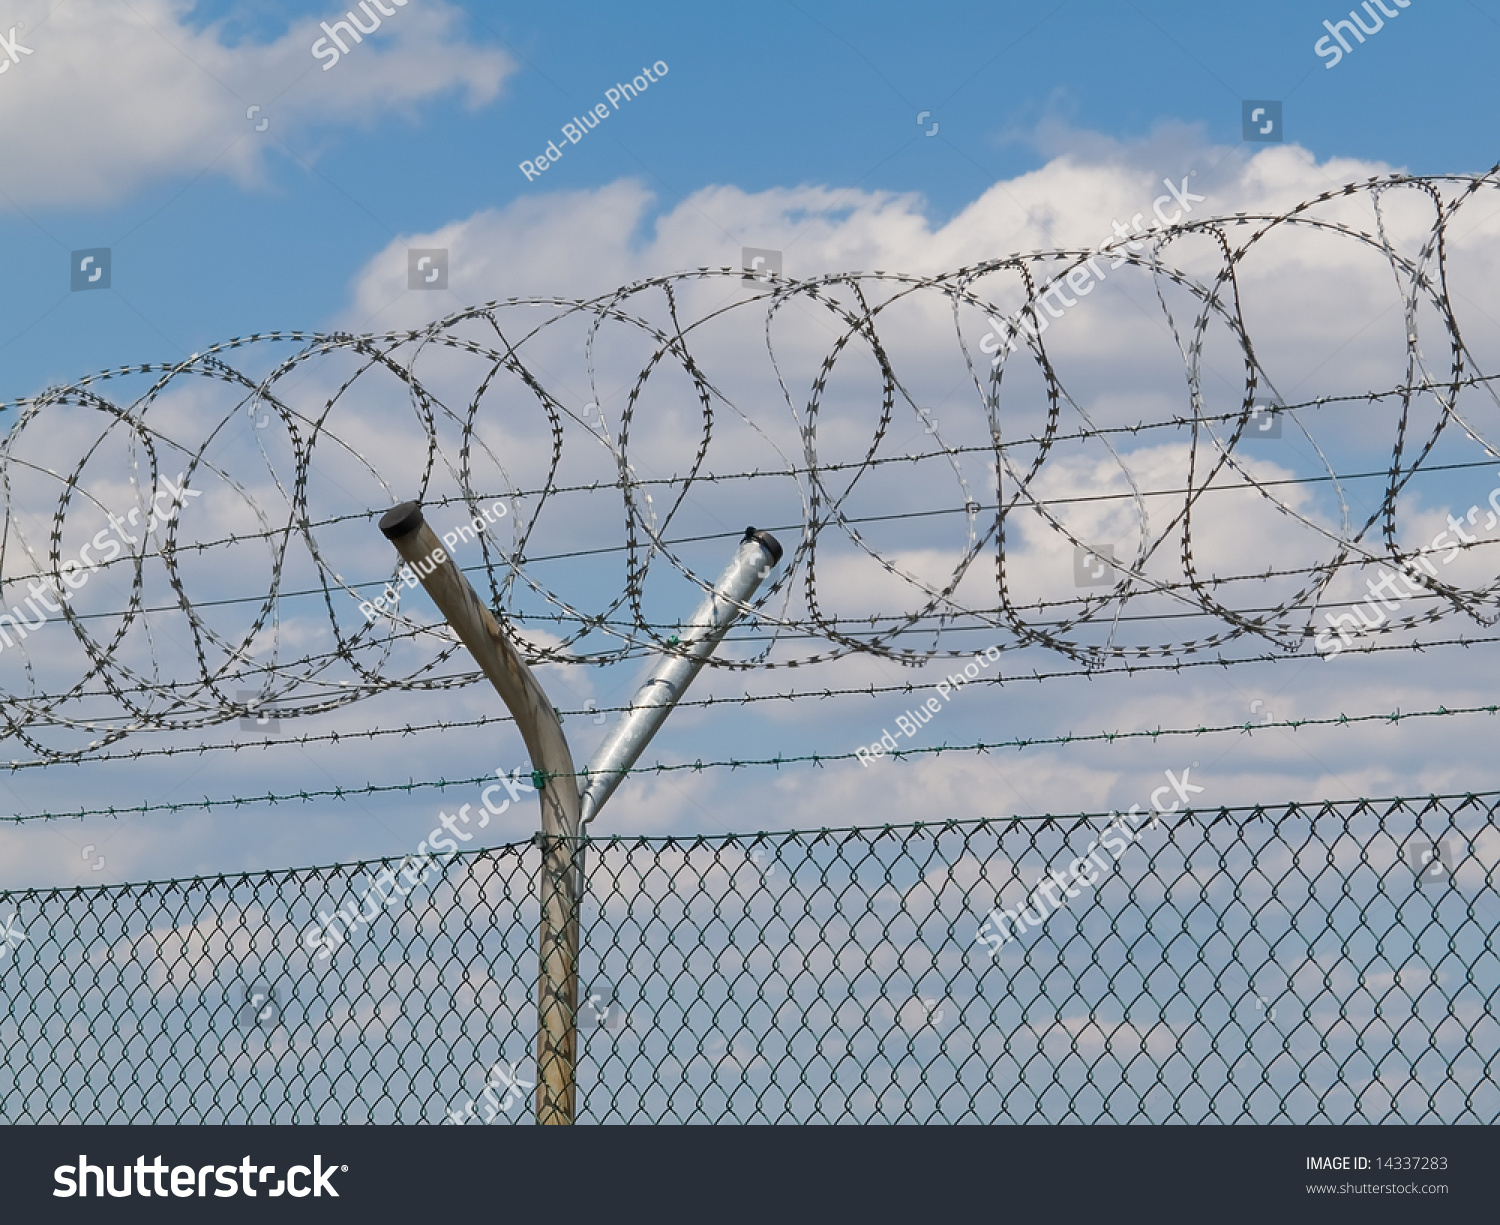 Security Fence Barbed Wire Stock Photo (Safe to Use) 14337283 ...